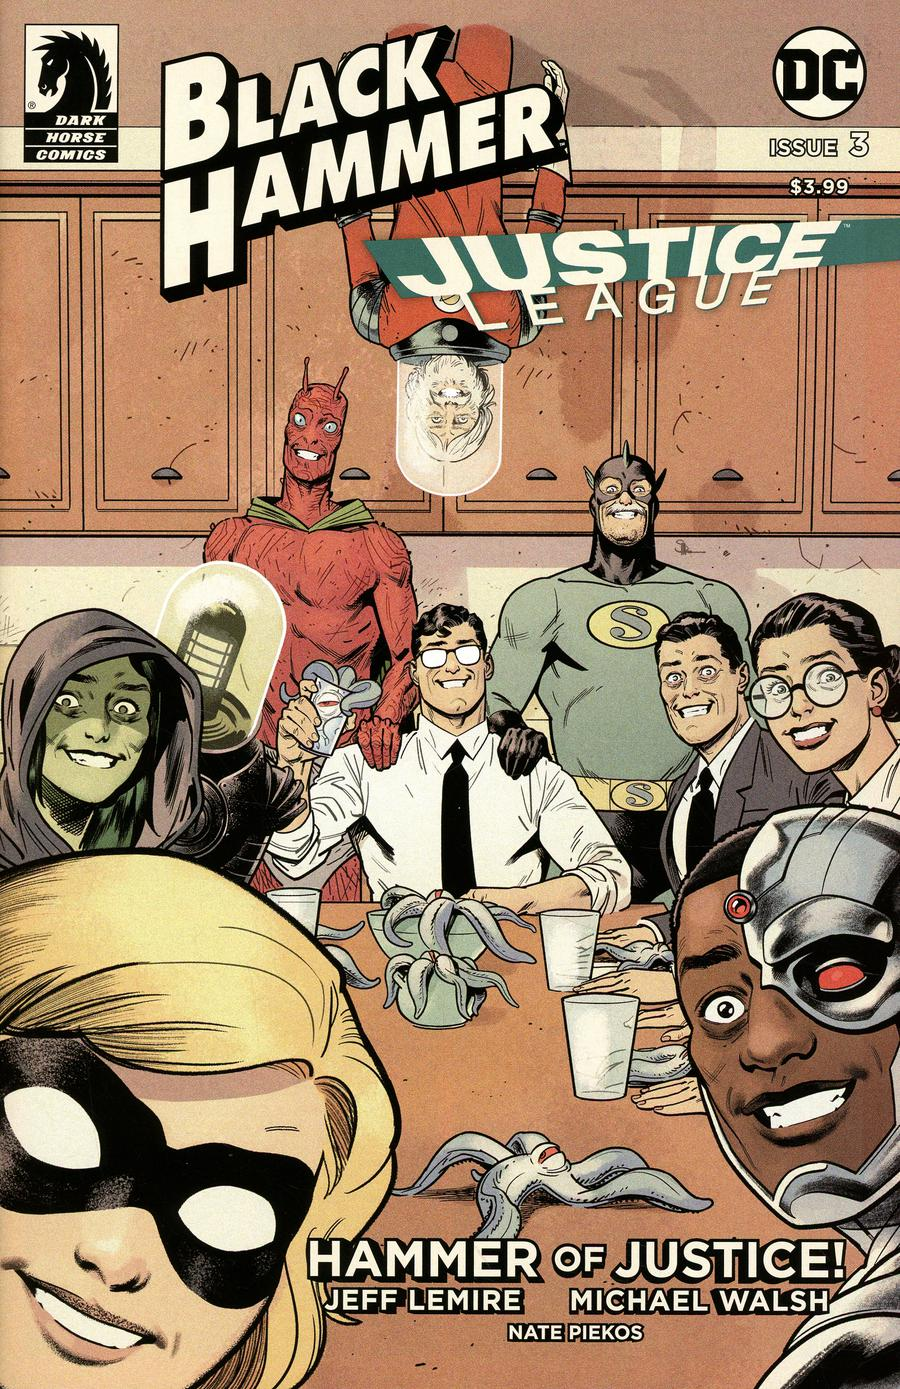 Black Hammer Justice League Hammer Of Justice #3 Cover E Variant Evan Shaner Cover